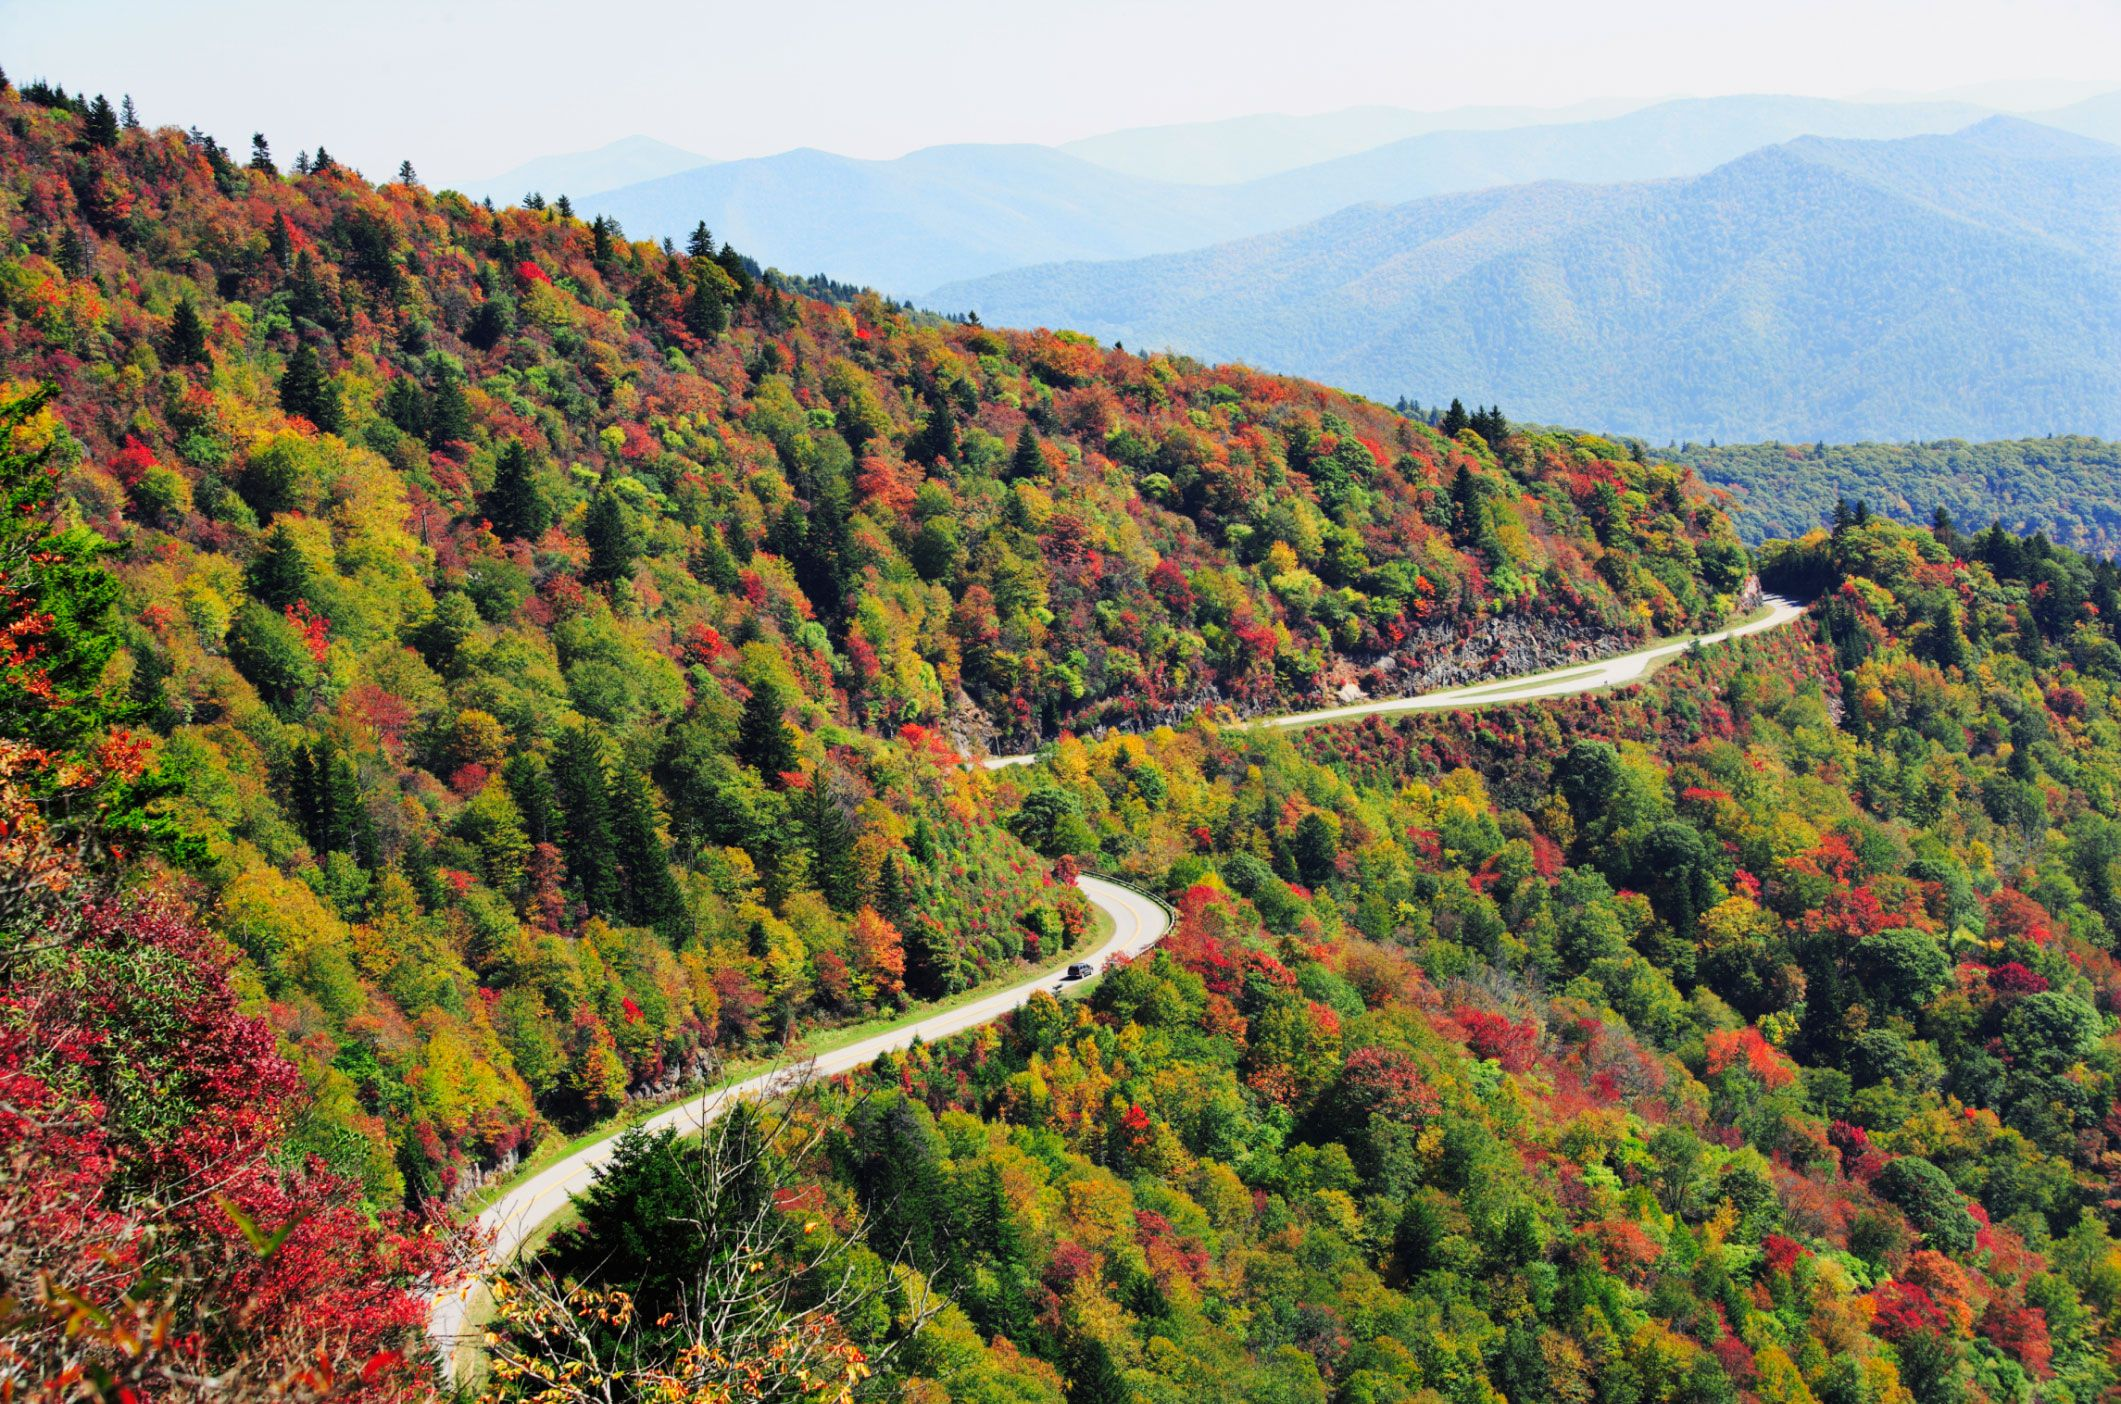 18 Reasons Blue Ridge Parkway is the Most Spectacular Place to Experience Autumn